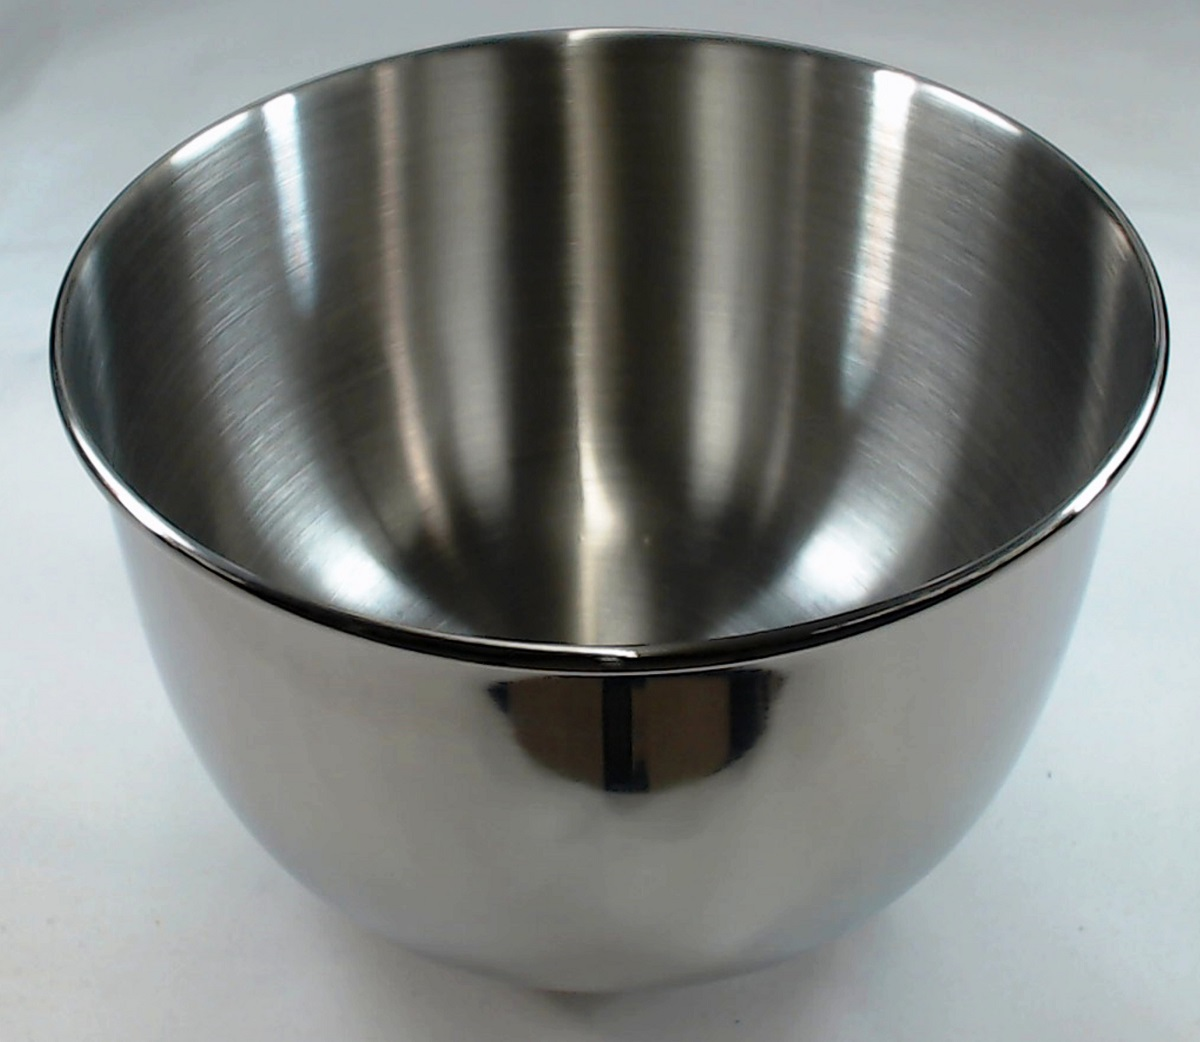 022803 000 000 Sunbeam Mixermaster Bowl